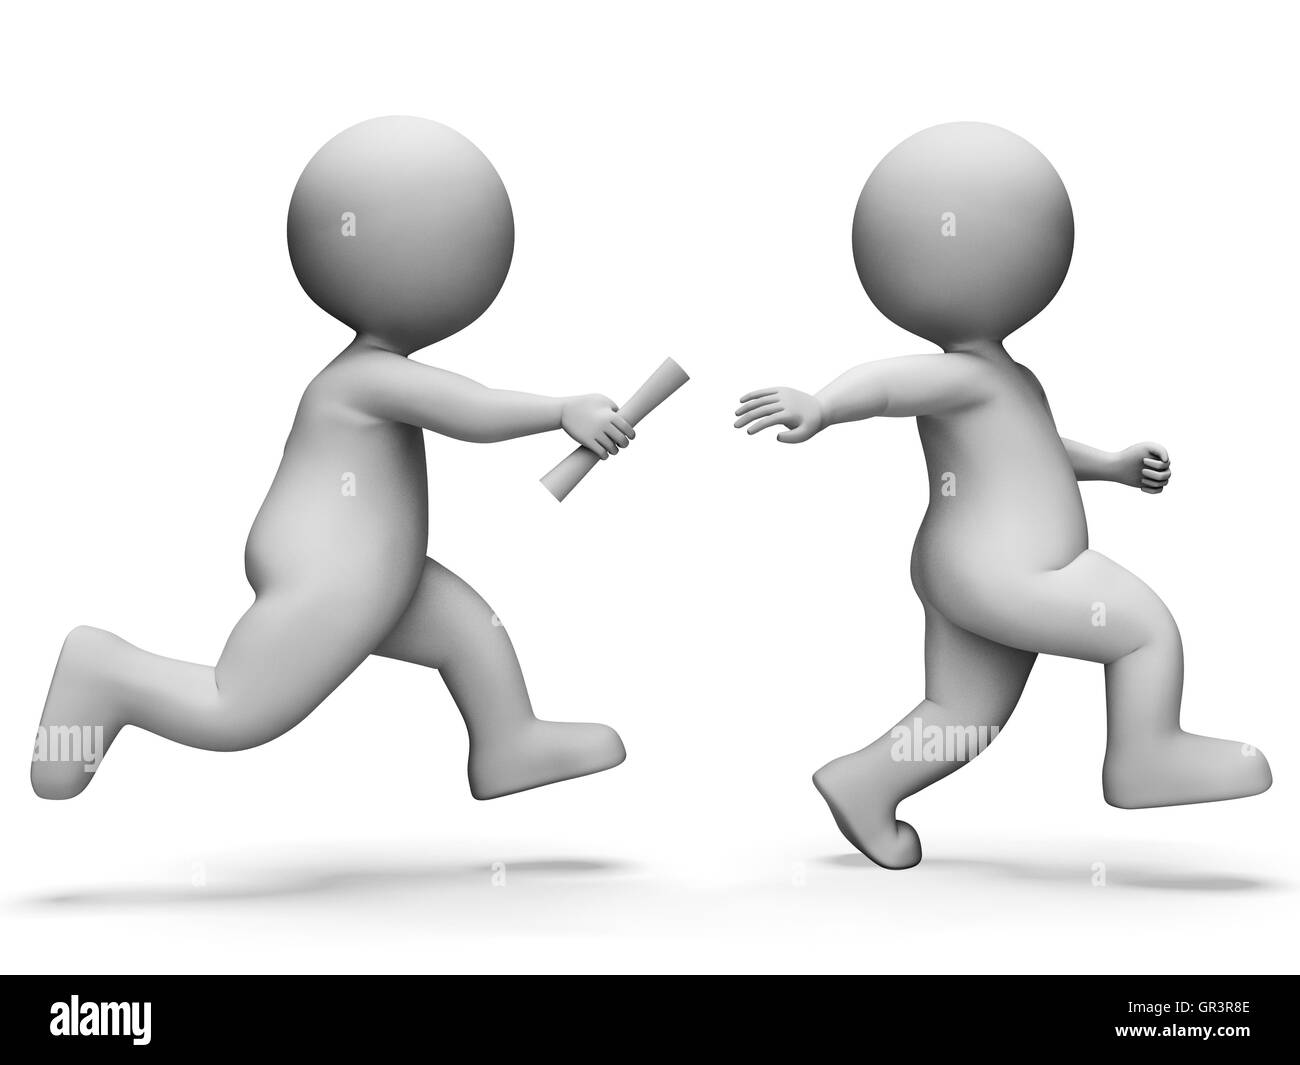 Athletics Race Meaning Track And Field And Passing The Baton 3d Rendering - Stock Image